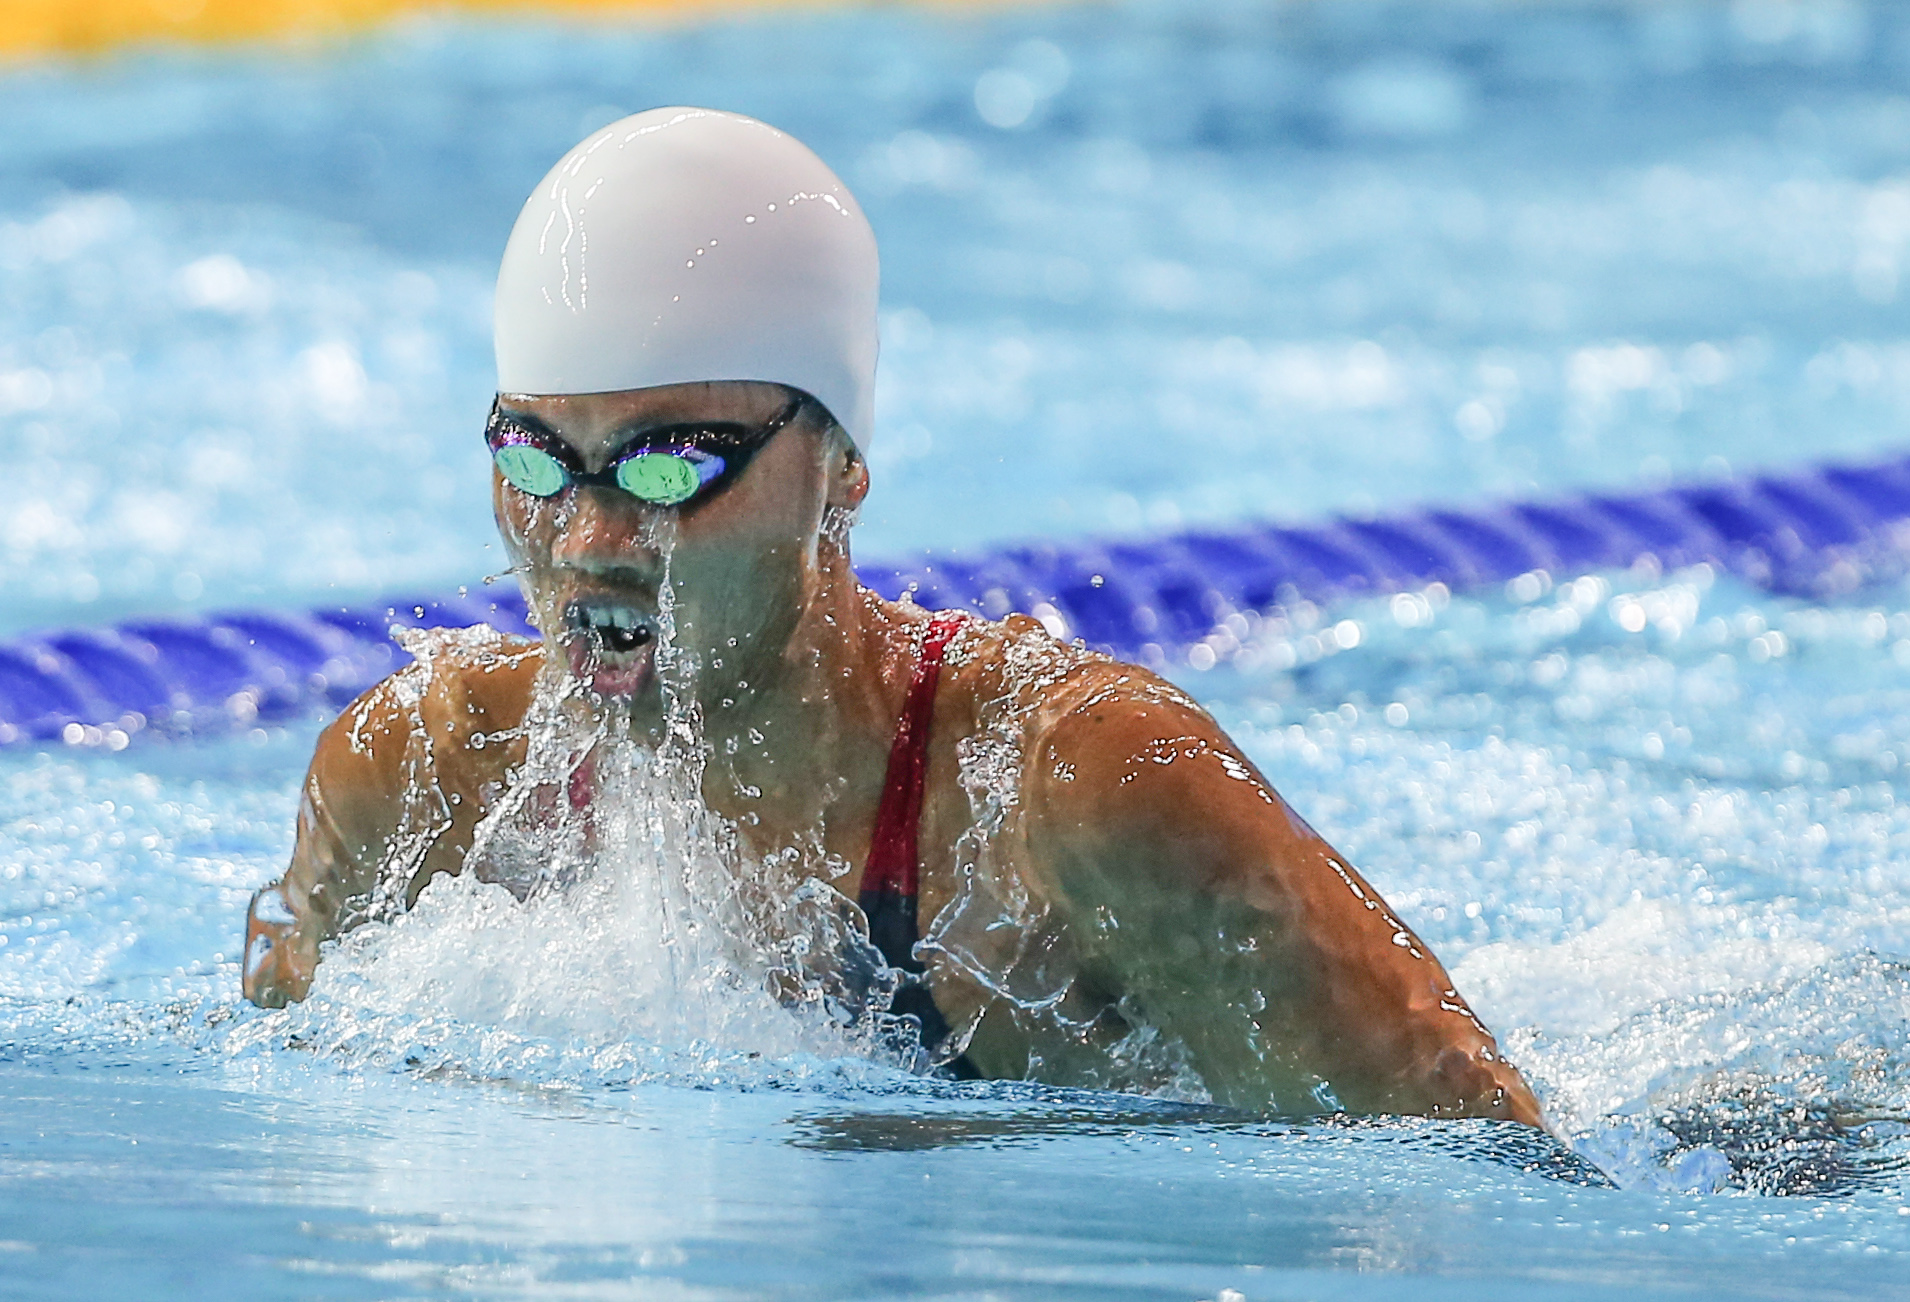 (140817) -- Nanjing,Aug 17,2014 (Xinhua) -- Gold medalist Vien Nguyen Thi Anh of Vietnam competes in the final of Women's 200m Individual Medley of Nanjing 2014 Youth Olympic Games in Nanjing, capital of east China?s Jiangsu Province, on Aug. 17, 2014. (Xinhua/Yang Lei) (txt)